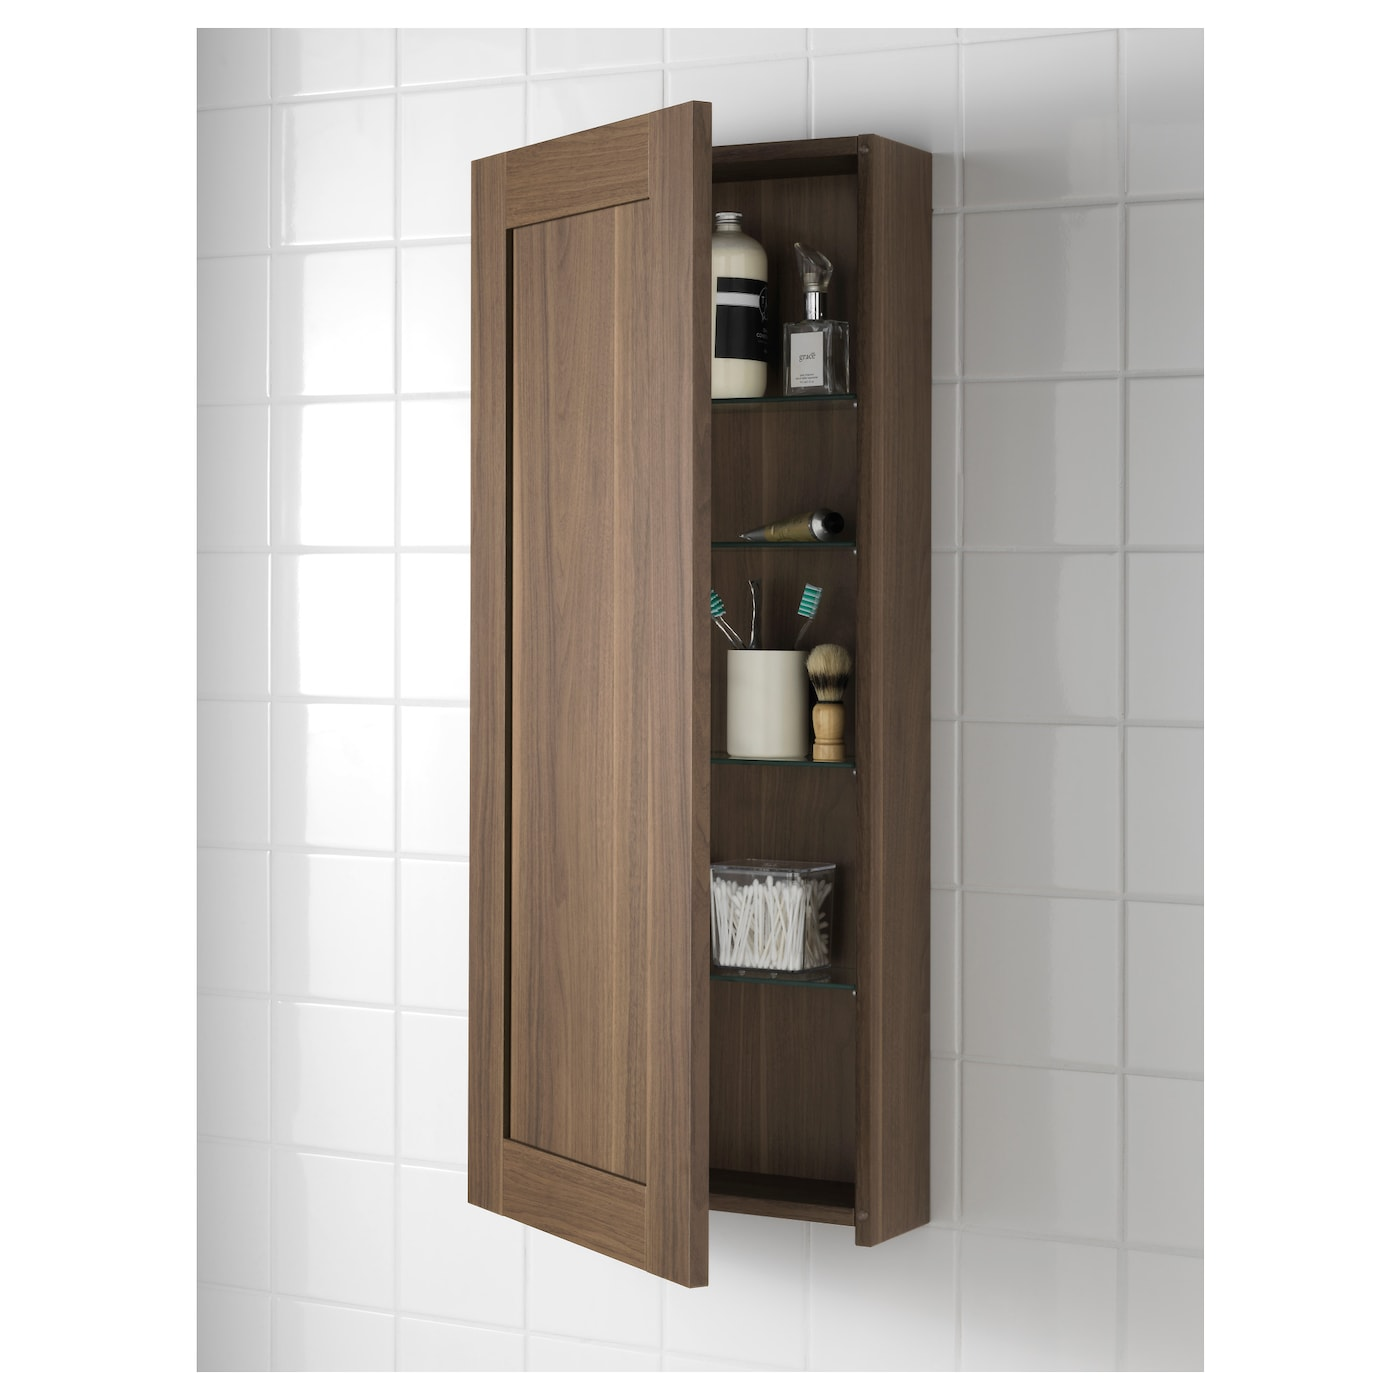 bathroom wall mount cabinet godmorgon wall cabinet with 1 door walnut effect 40 x 14 x 11872